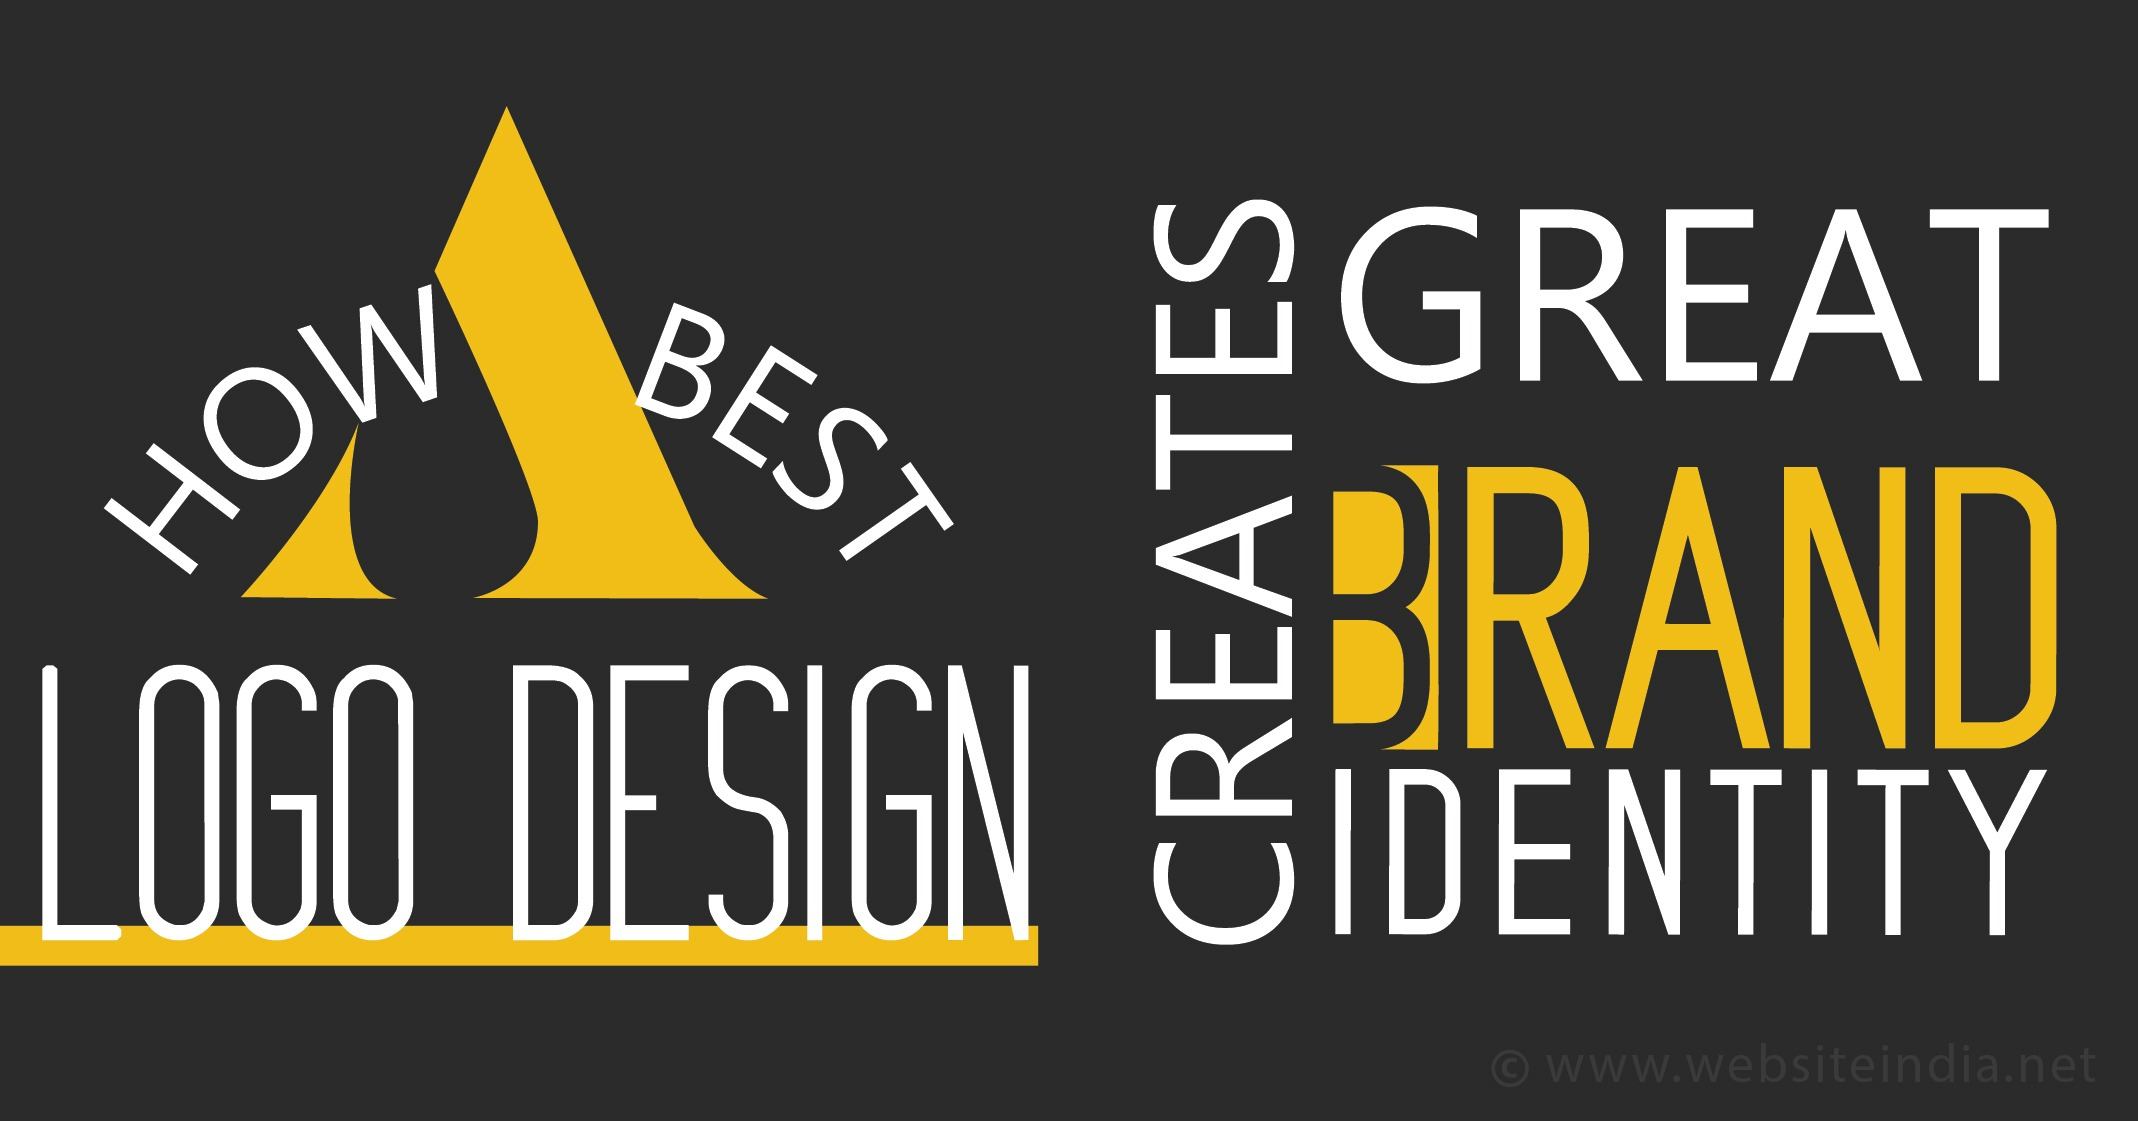 Best Logo Design Creates Great Brand Identity